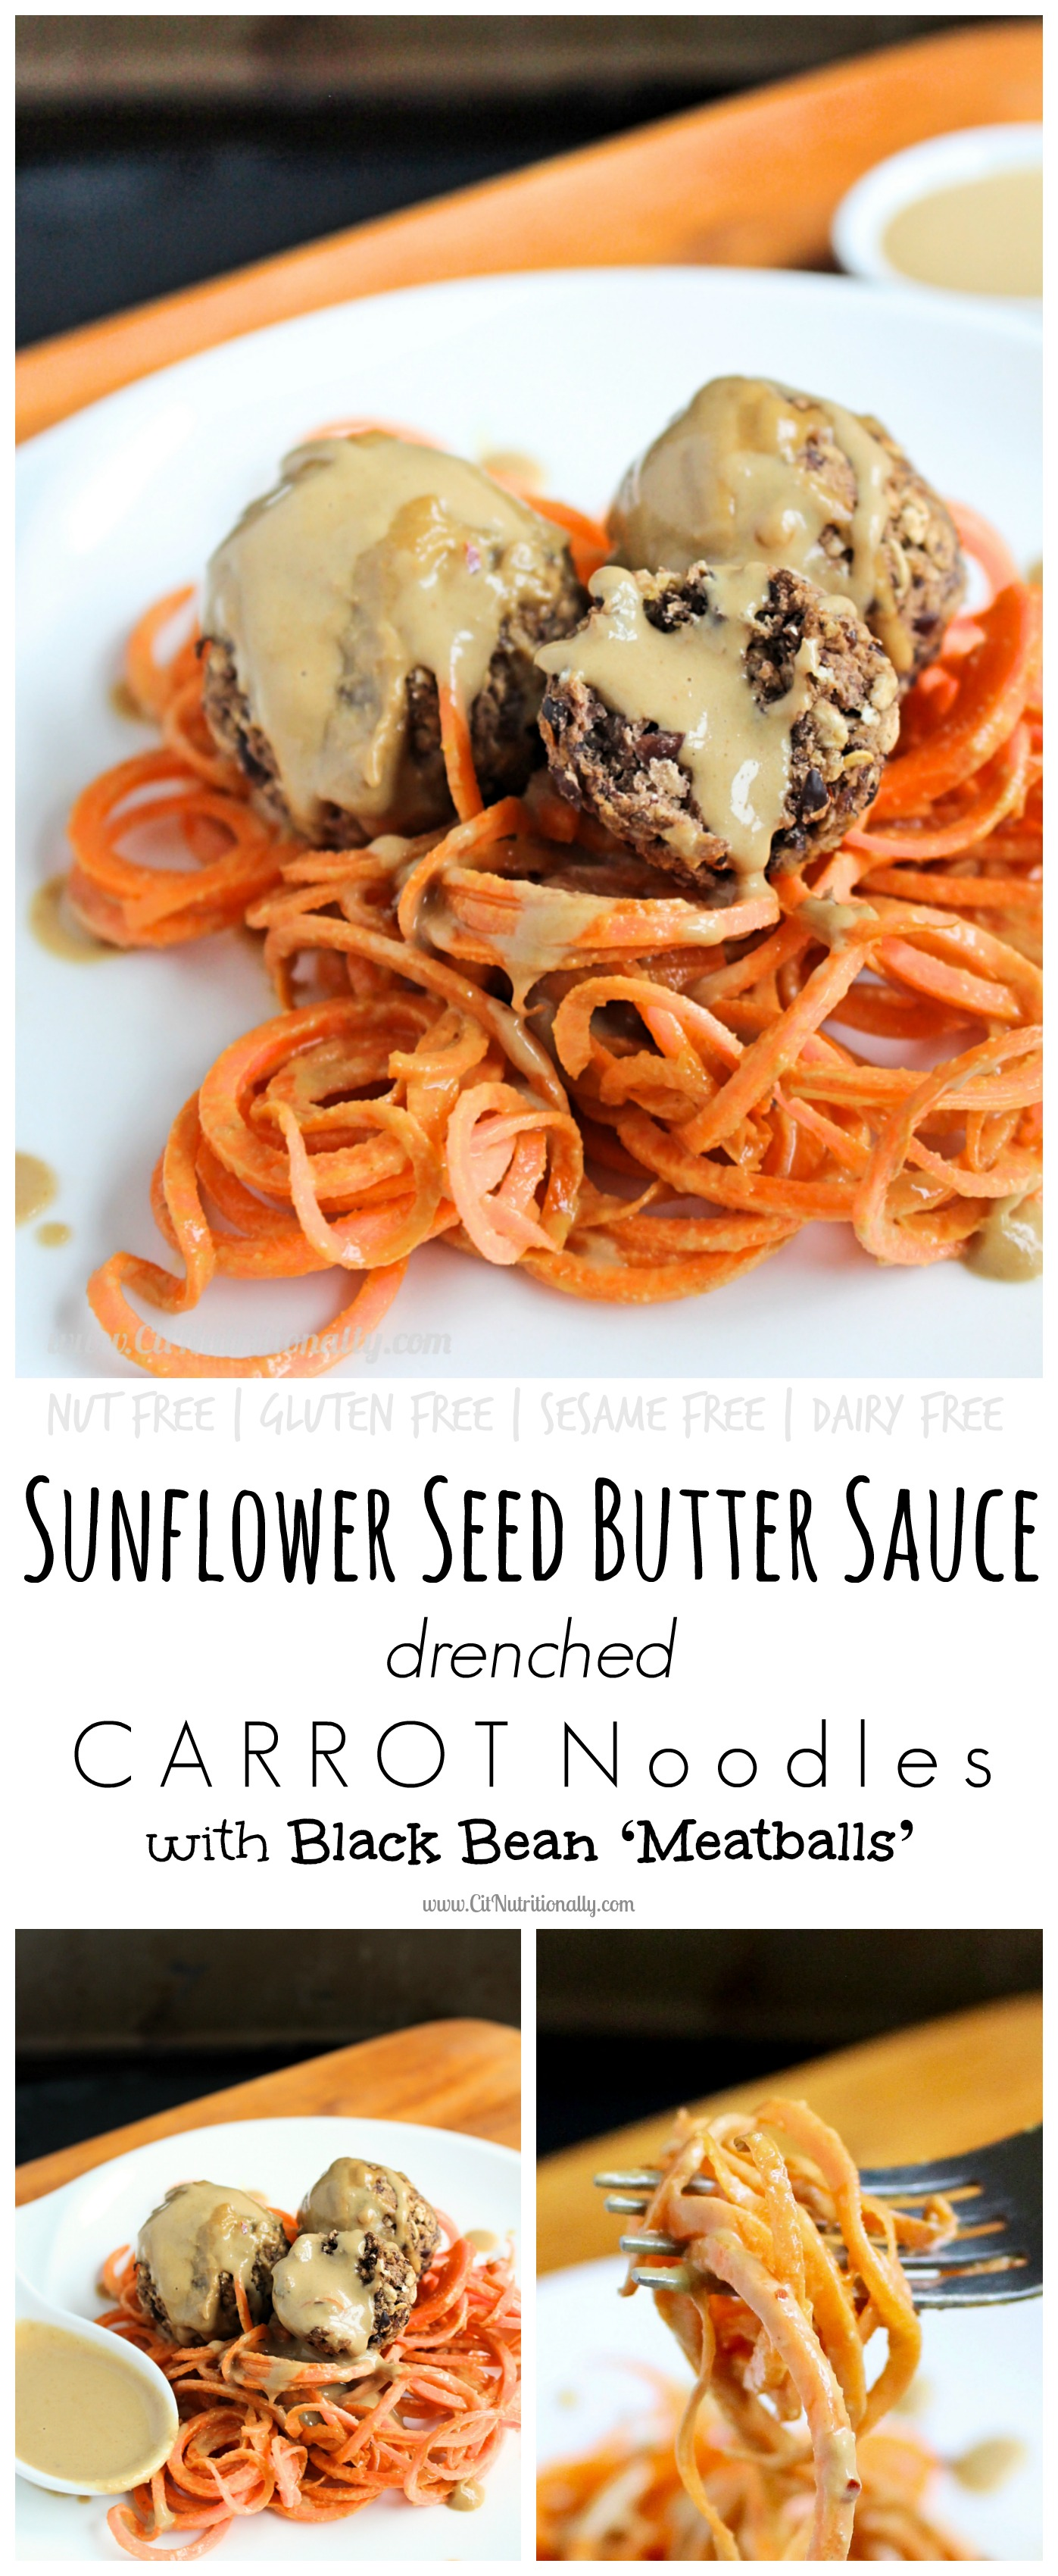 #ad Sunflower Seed Butter Sauce Drenched Carrot Noodles with Black Bean 'Meatballs'